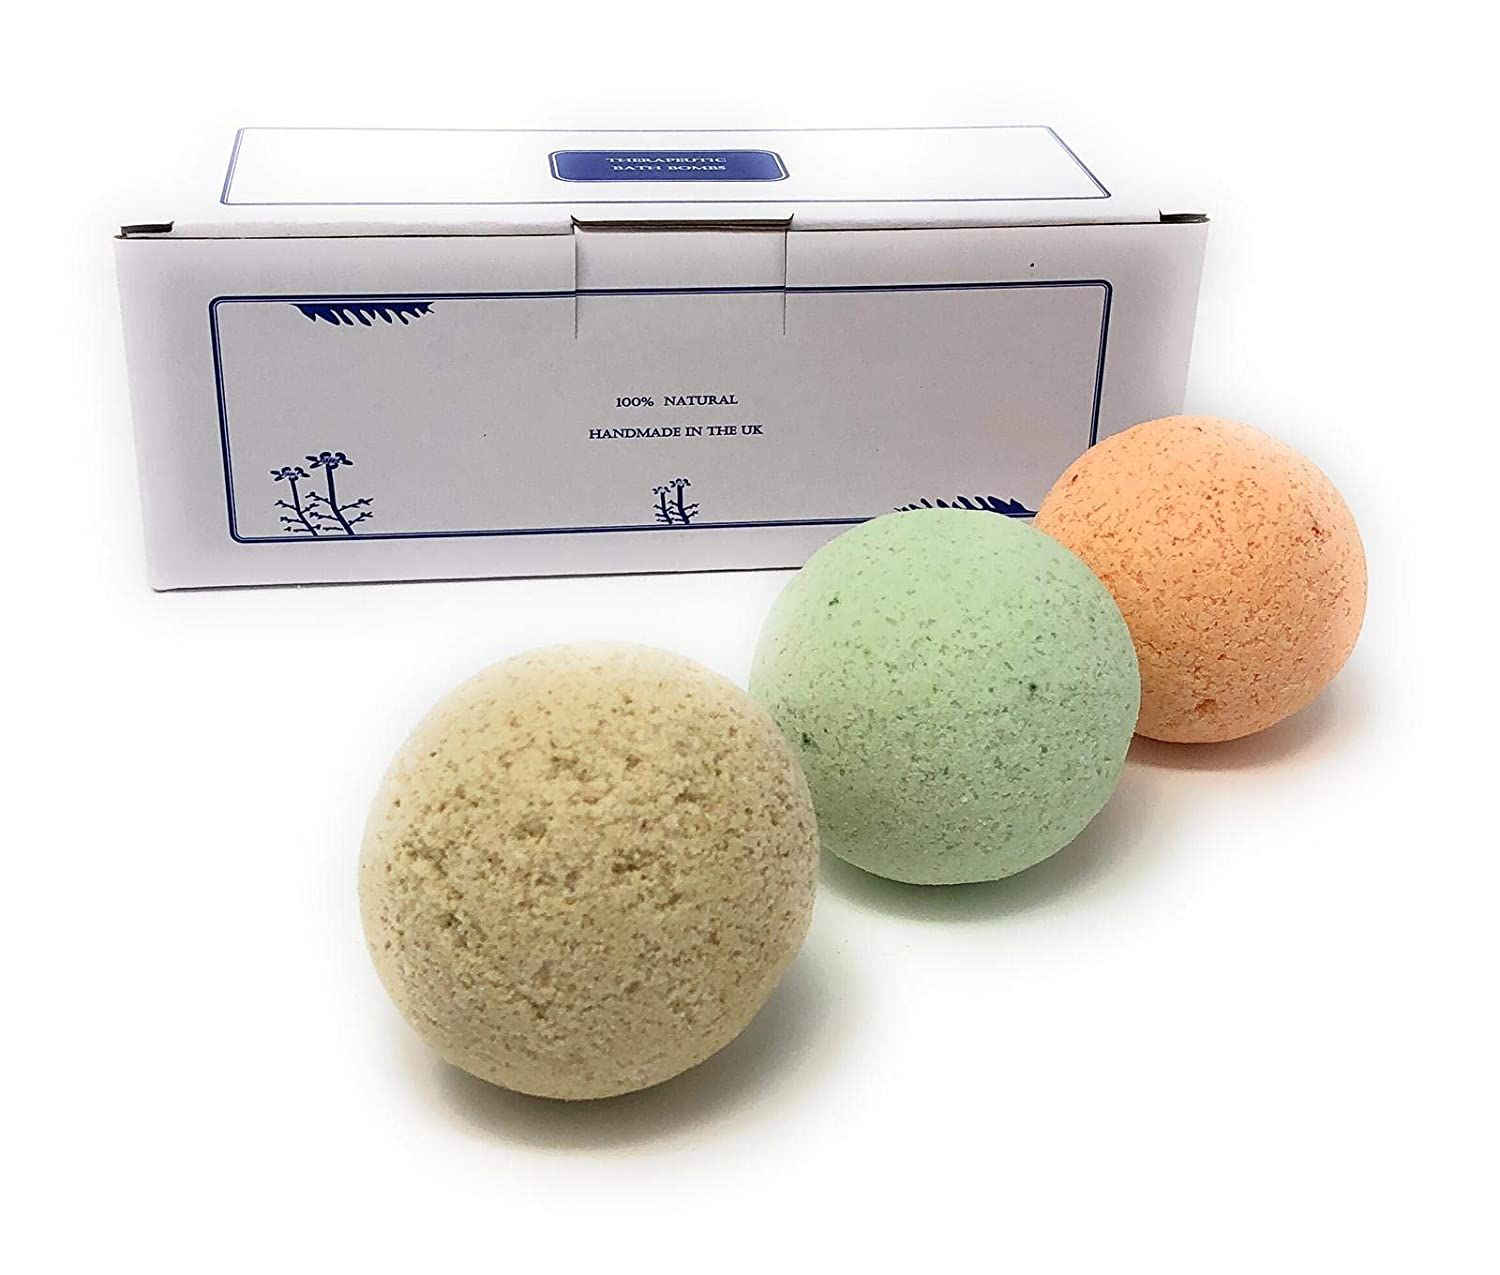 3 Luxury Therapeutic Bath Bombs Gift Pack For Men. Handmade in the UK